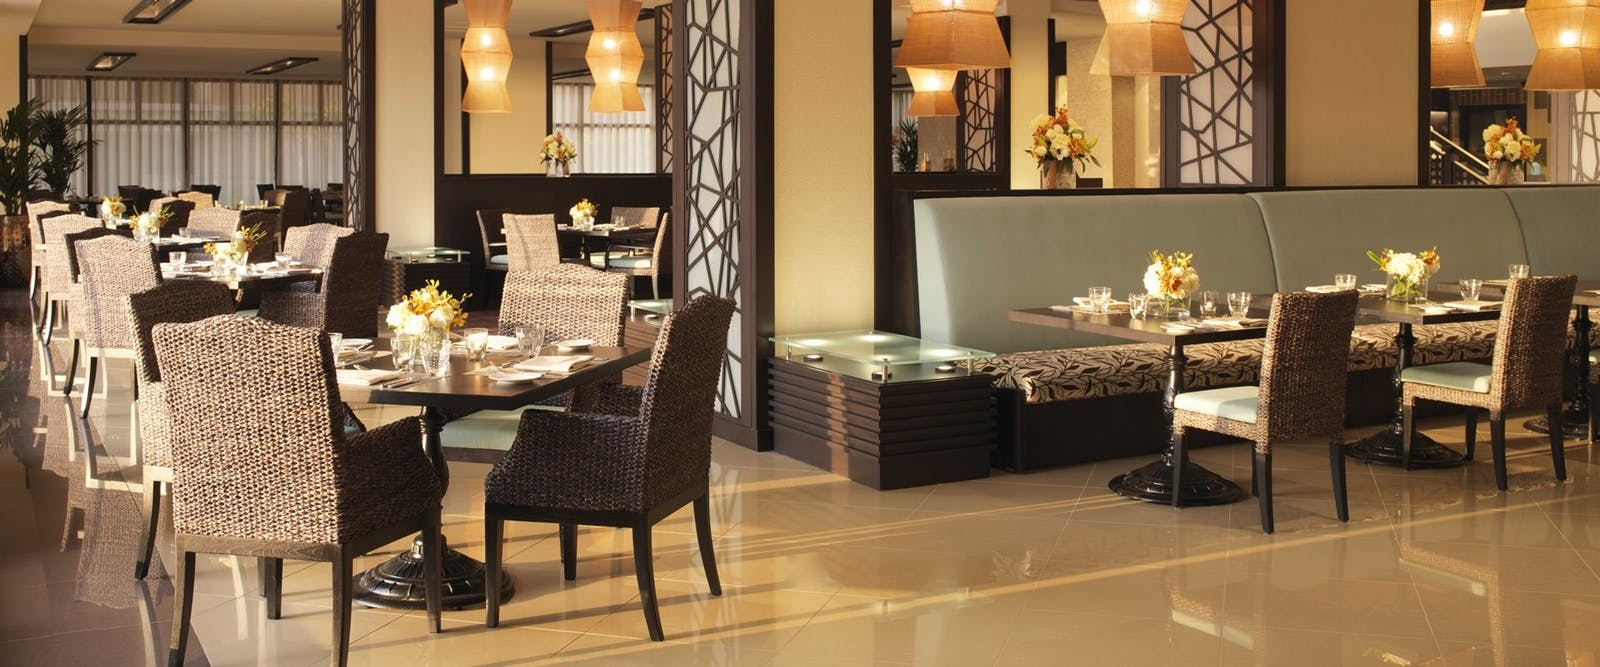 Crescendo Restaurant at Anantara Dubai The Palm Resort & Spa